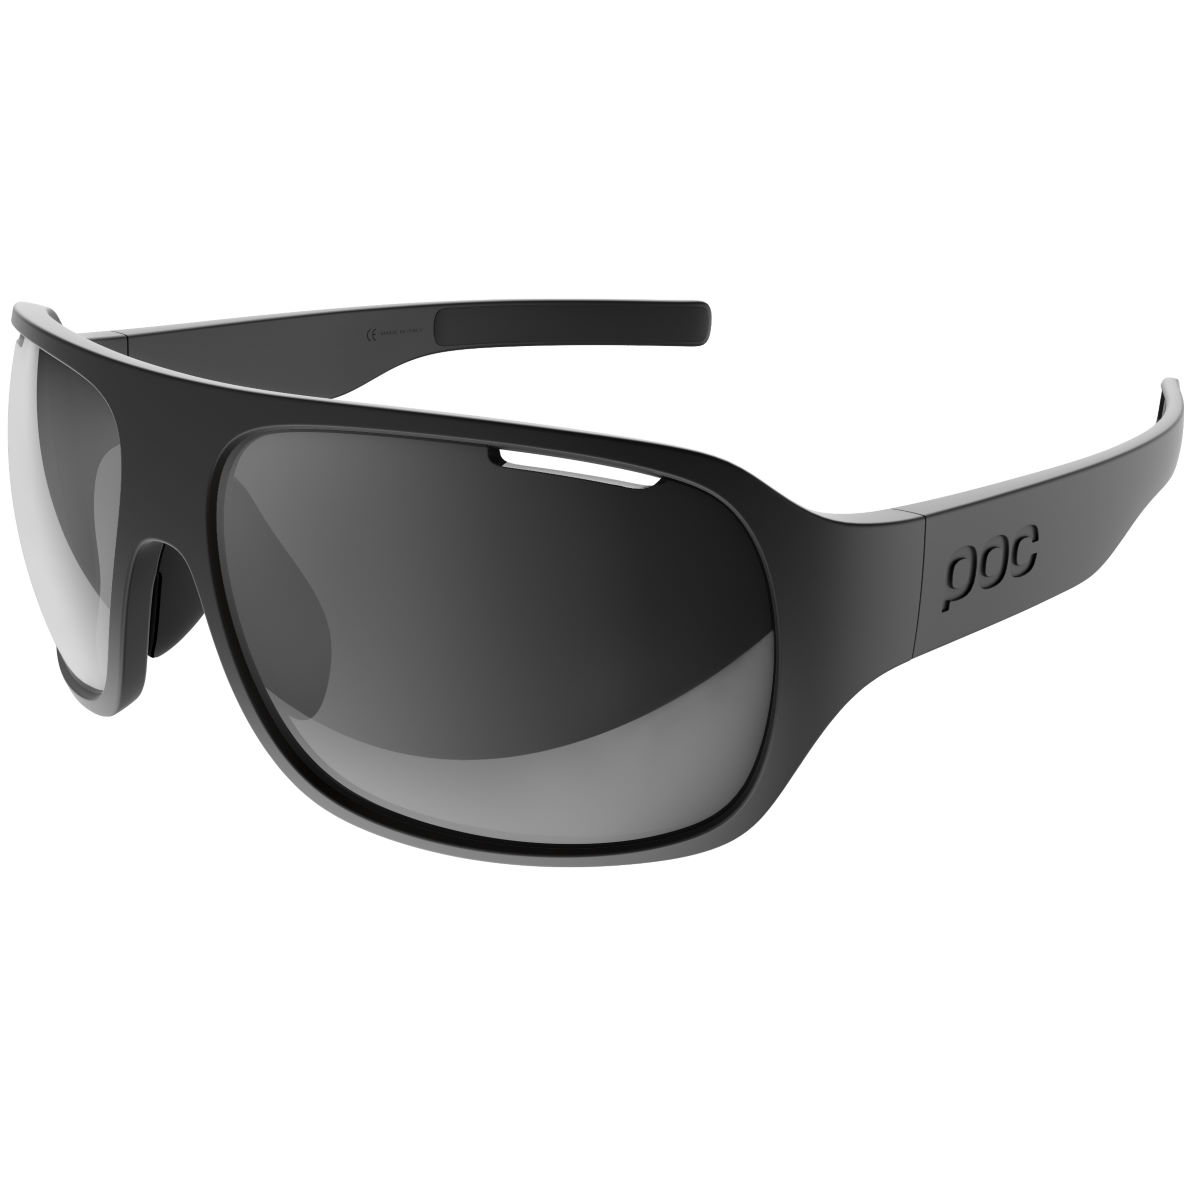 Gafas de sol POC DO Flow Allround Trail - Gafas de sol